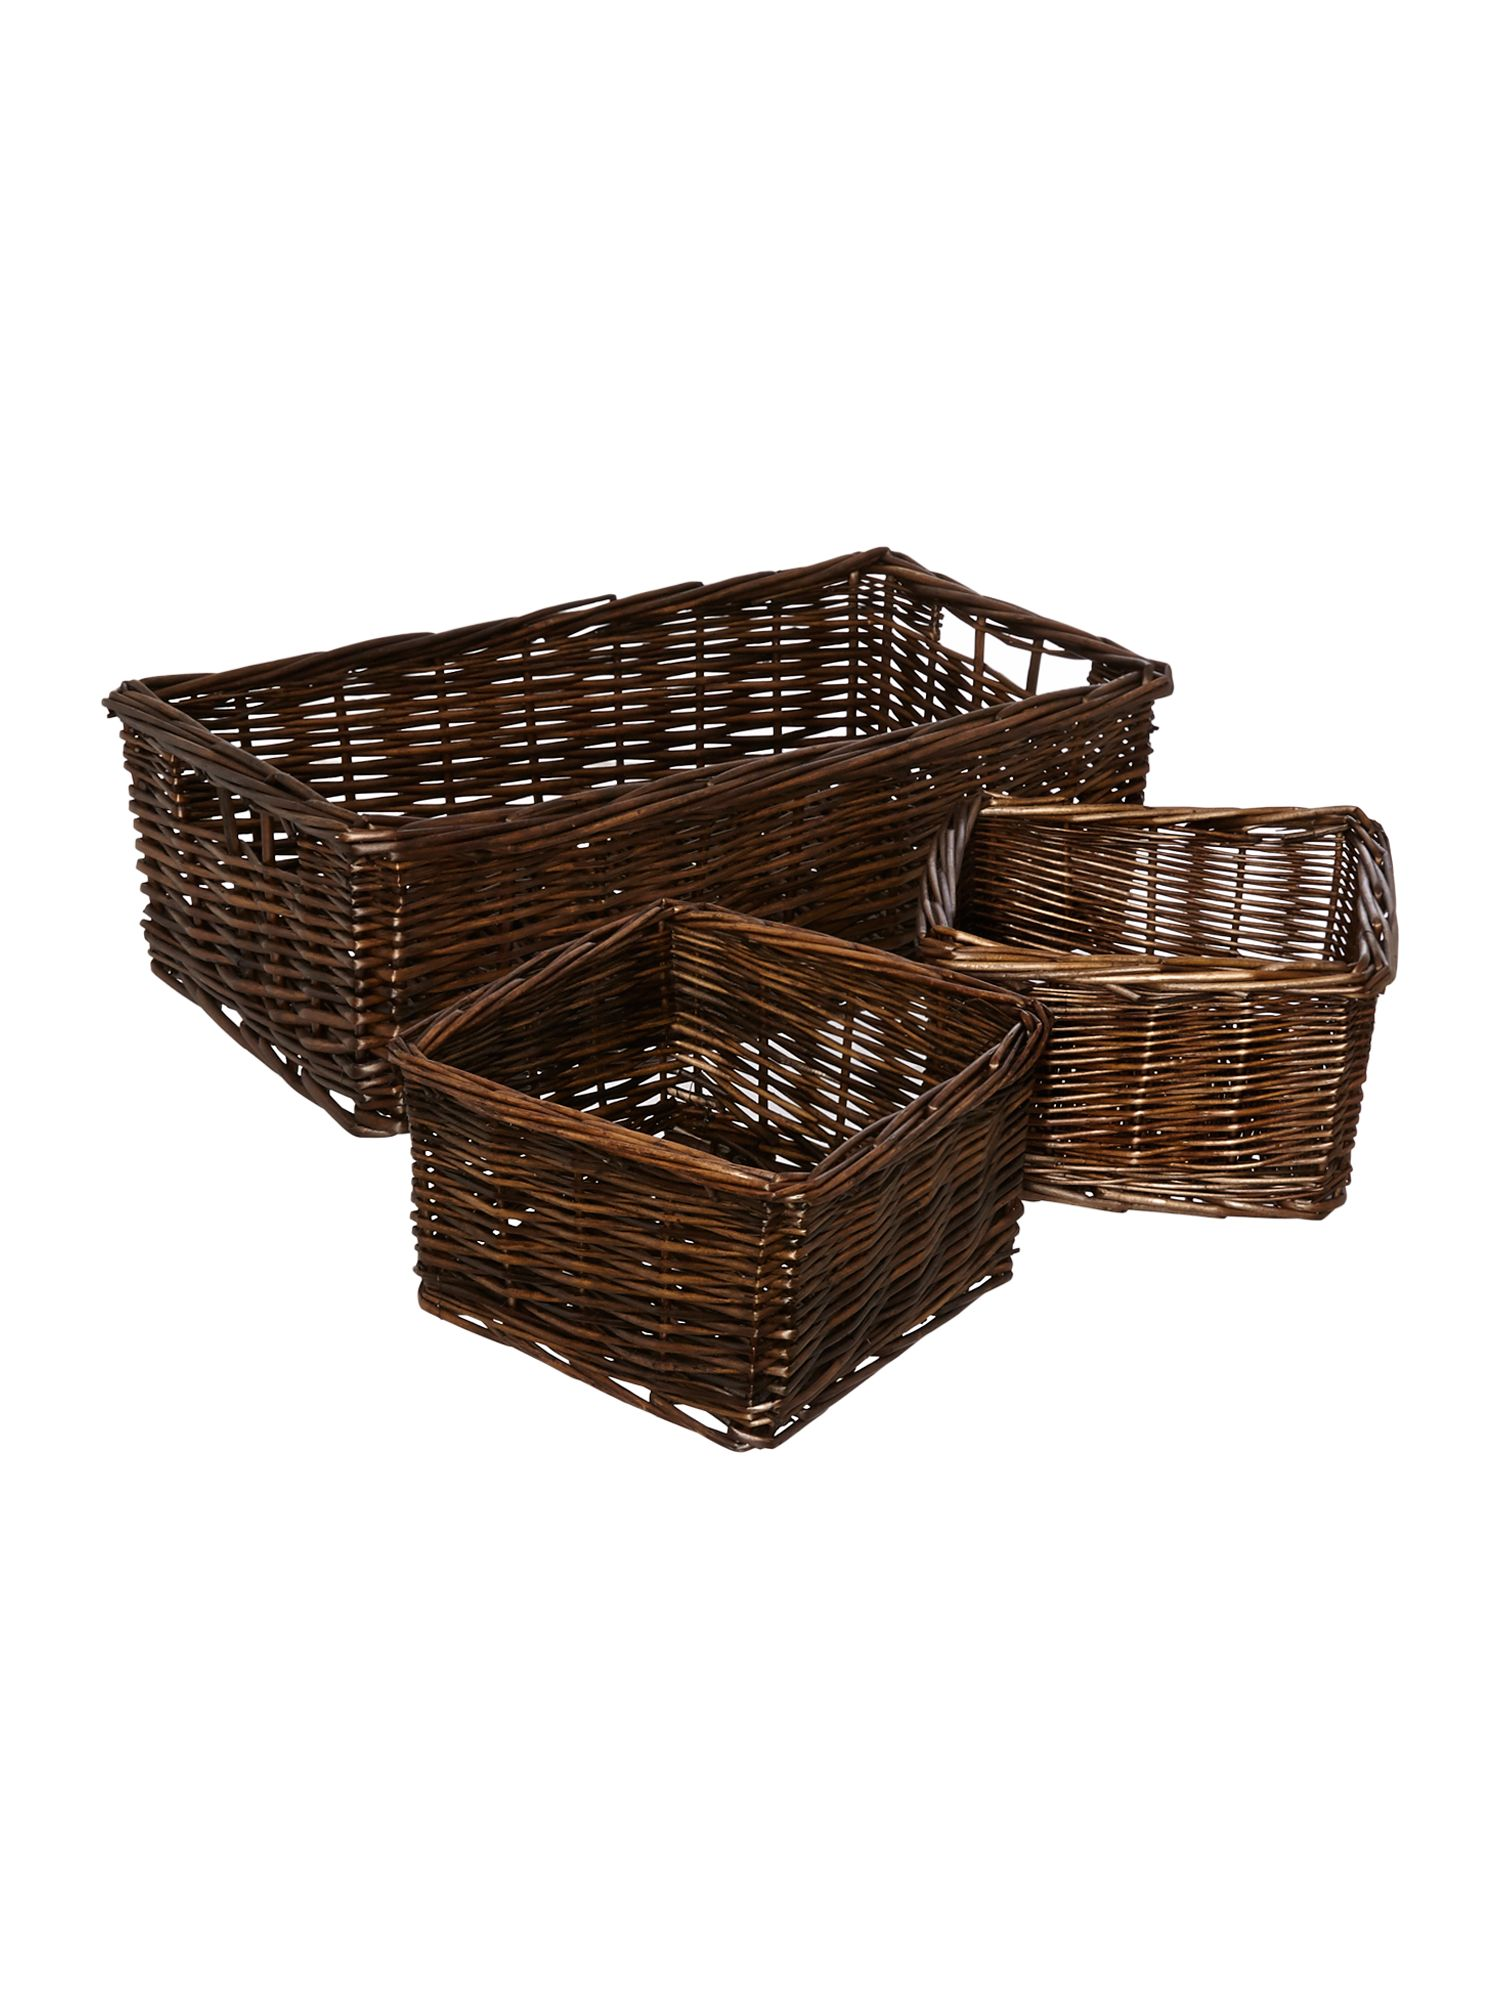 Wicker set of 3 storage trays